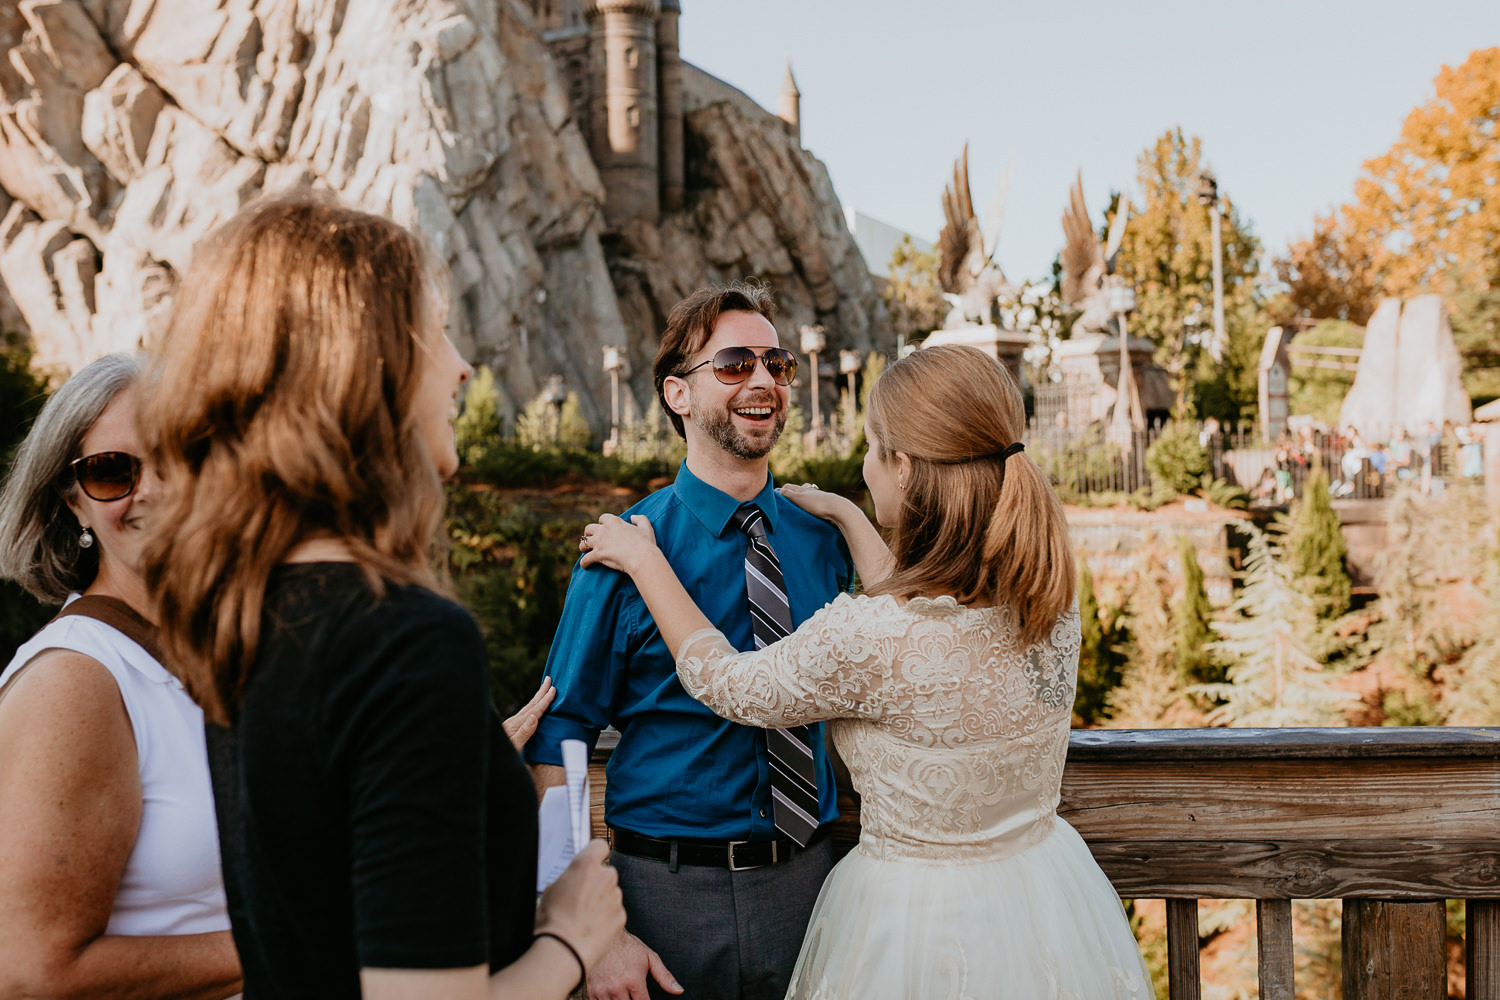 newlyweds meeting for first time on universal studios bridge